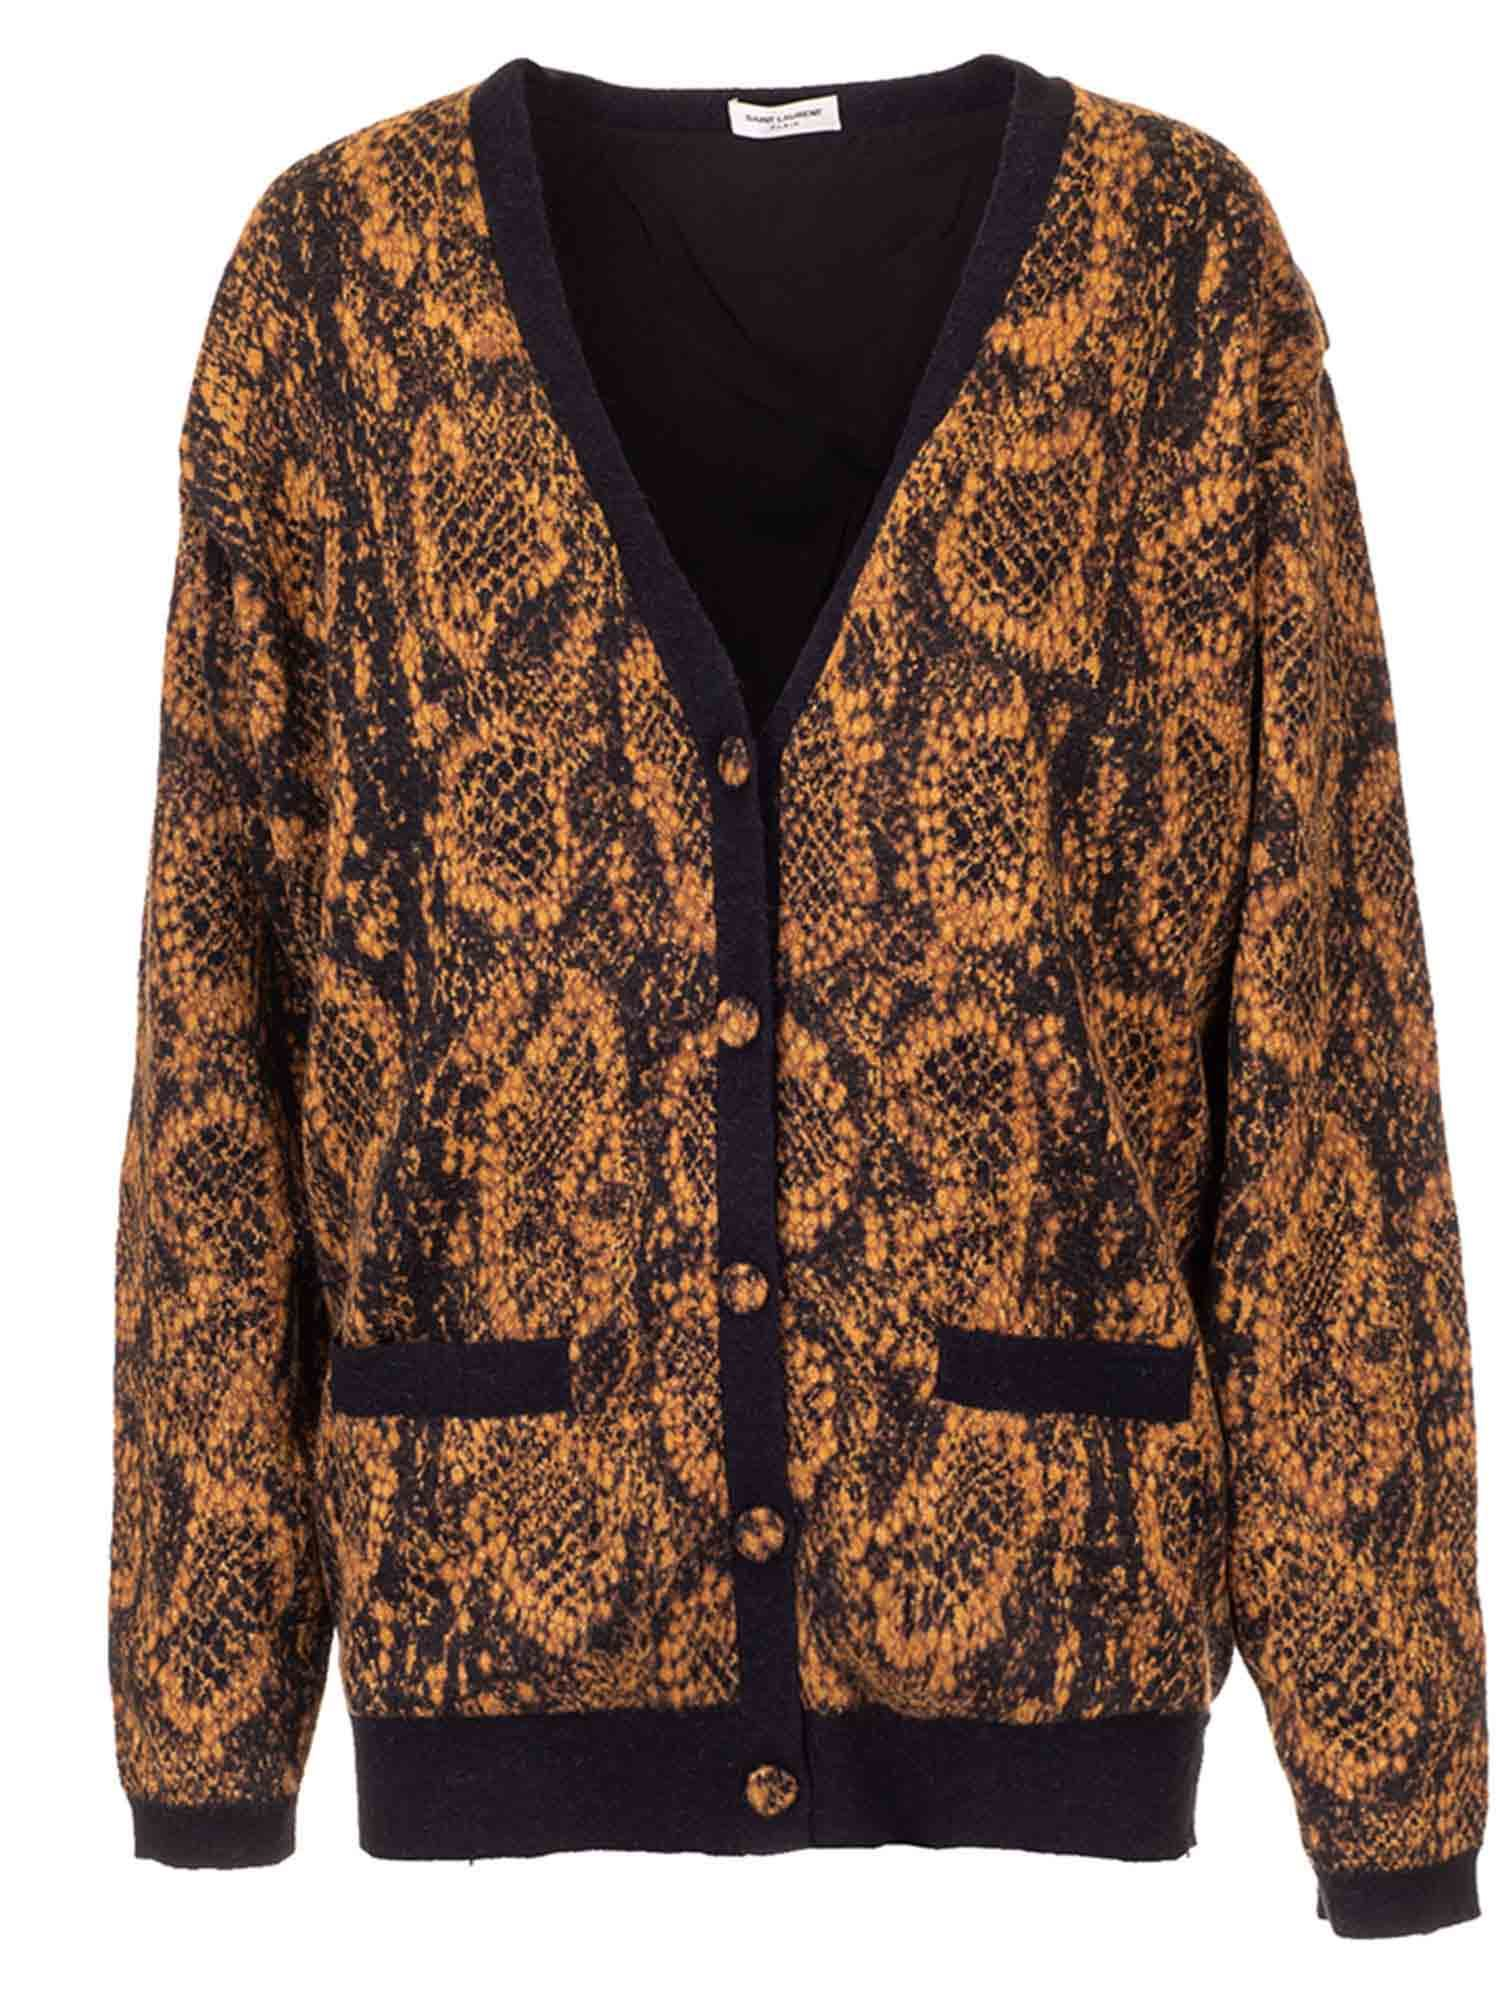 Saint Laurent REPTILE PRINT CARDIGAN IN BLACK AND BROWN